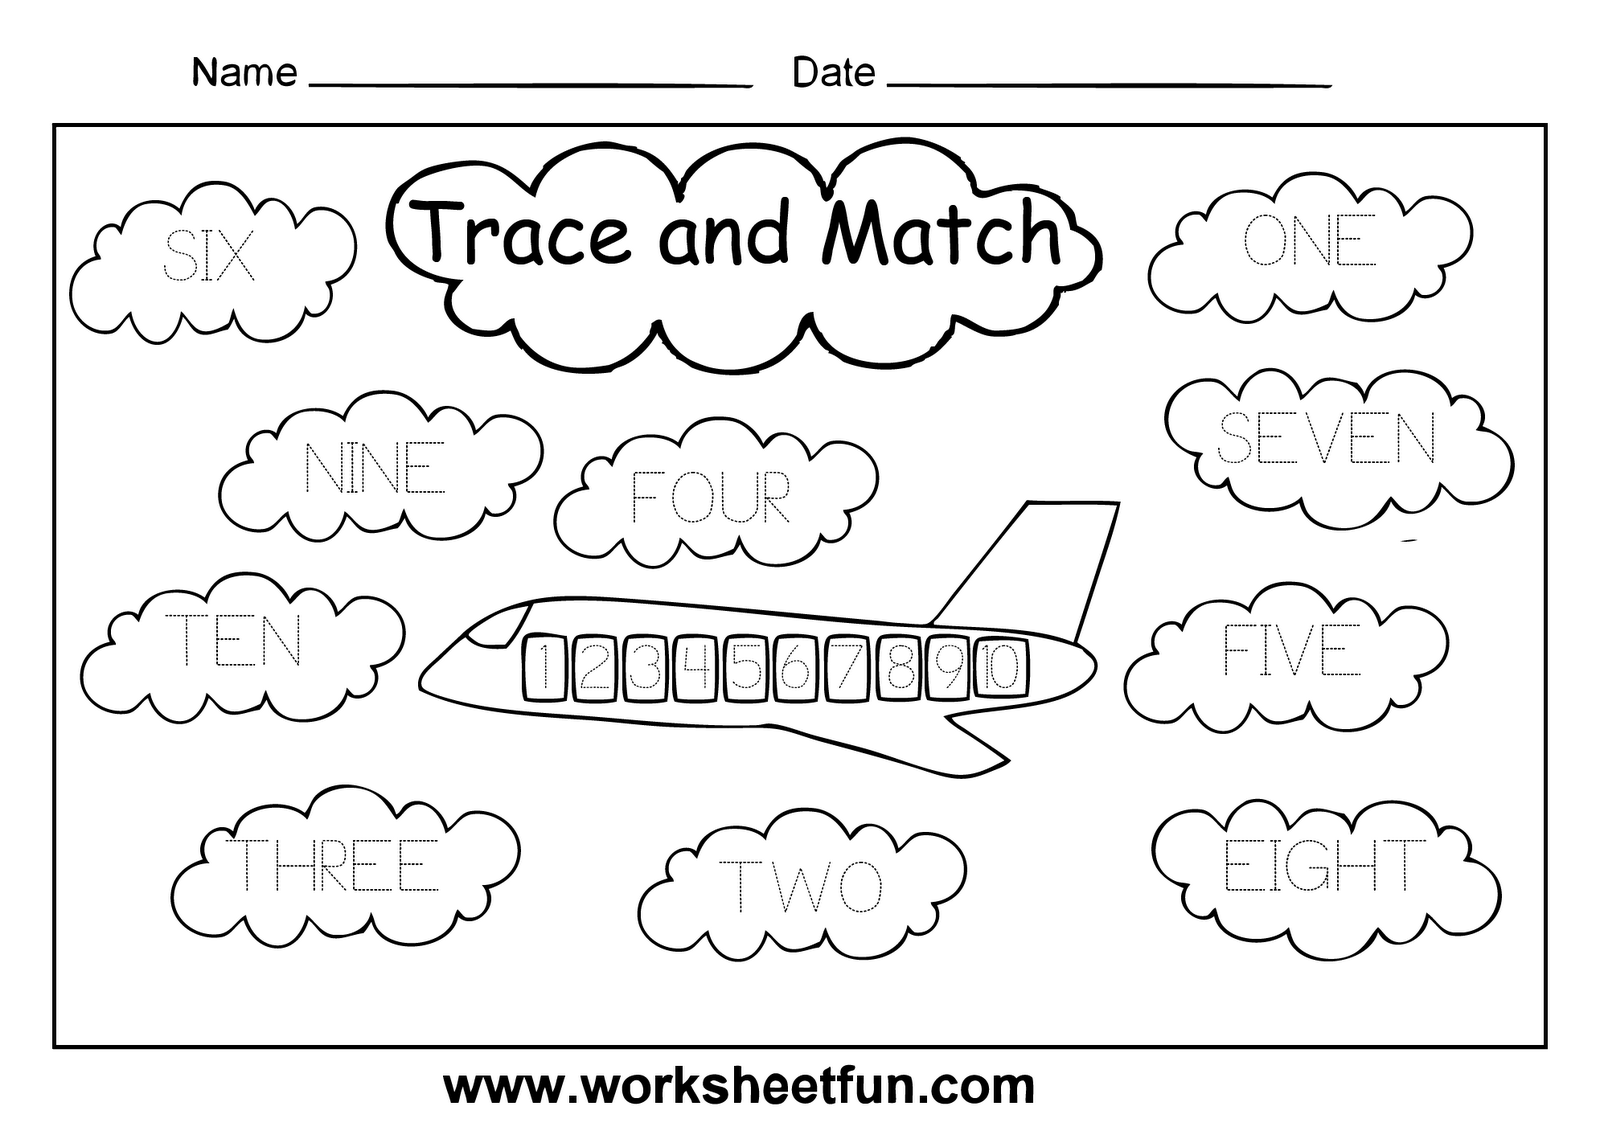 Weirdmailus  Picturesque Worksheet Numbers    Reocurent With Gorgeous Converting Fractions To Decimals To Percents Worksheet Besides Spanish Imperfect Tense Worksheet Furthermore Worksheet Tab With Enchanting How To Write In Cursive Worksheets Also Math Facts Addition Worksheets In Addition Nd Grade Regrouping Worksheets And Exterior Angles Of A Polygon Worksheet As Well As Of Mice And Men Worksheet Answers Additionally Fiction Worksheets From Reocurentcom With Weirdmailus  Gorgeous Worksheet Numbers    Reocurent With Enchanting Converting Fractions To Decimals To Percents Worksheet Besides Spanish Imperfect Tense Worksheet Furthermore Worksheet Tab And Picturesque How To Write In Cursive Worksheets Also Math Facts Addition Worksheets In Addition Nd Grade Regrouping Worksheets From Reocurentcom